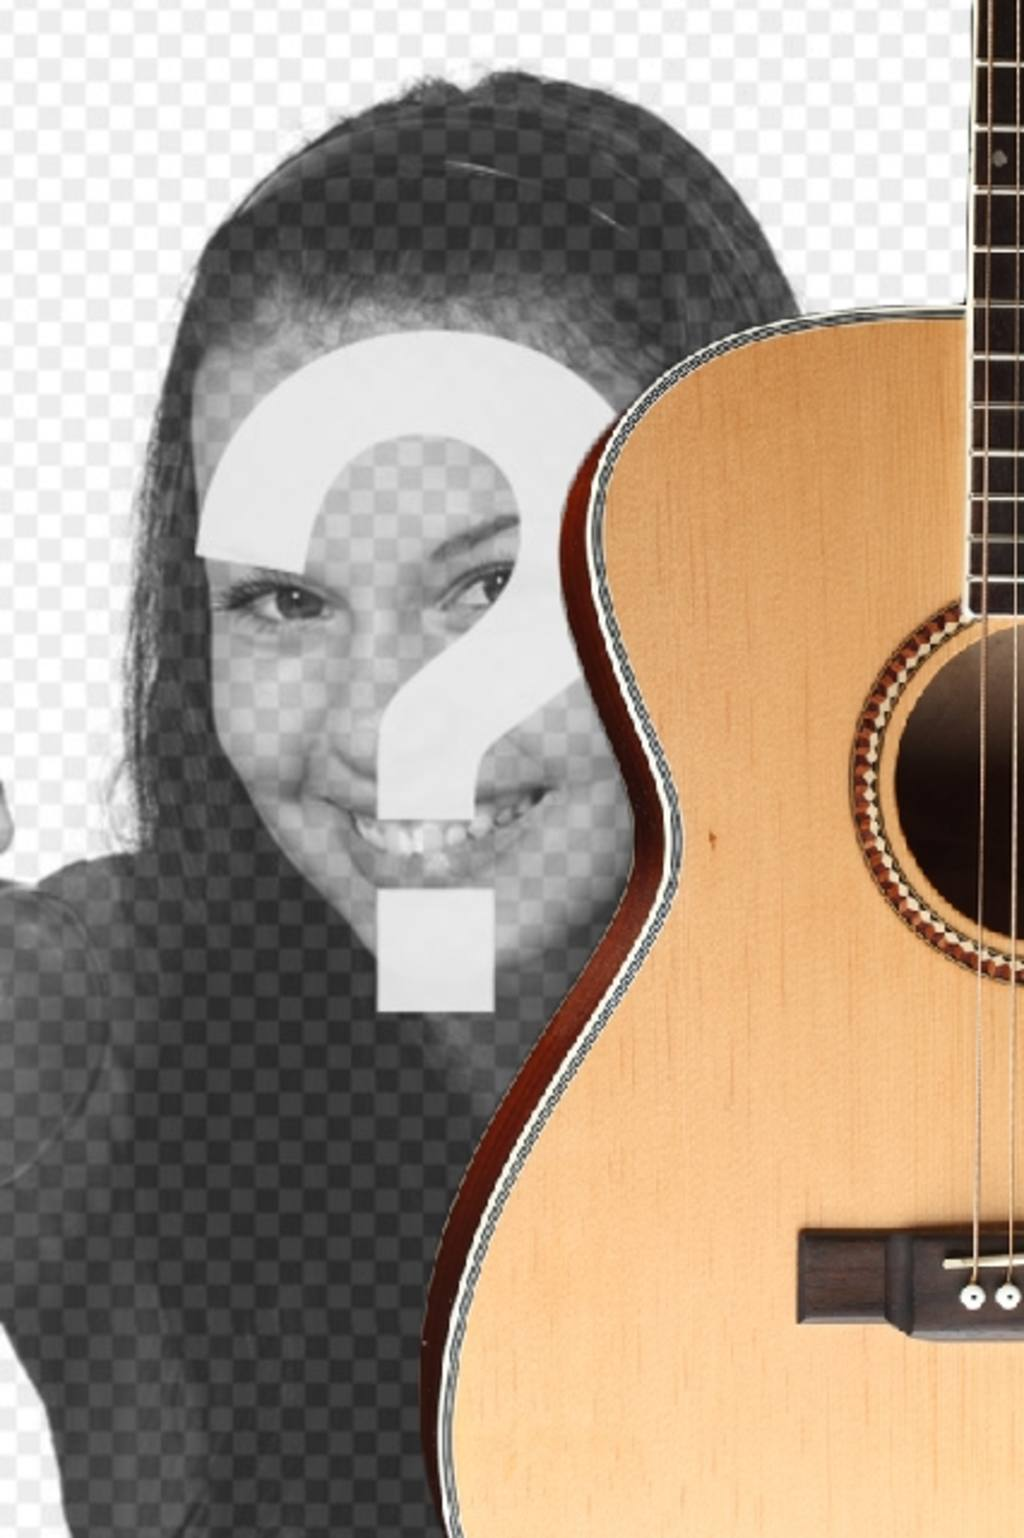 Photomontage to put a Spanish guitar in a photo and add text online